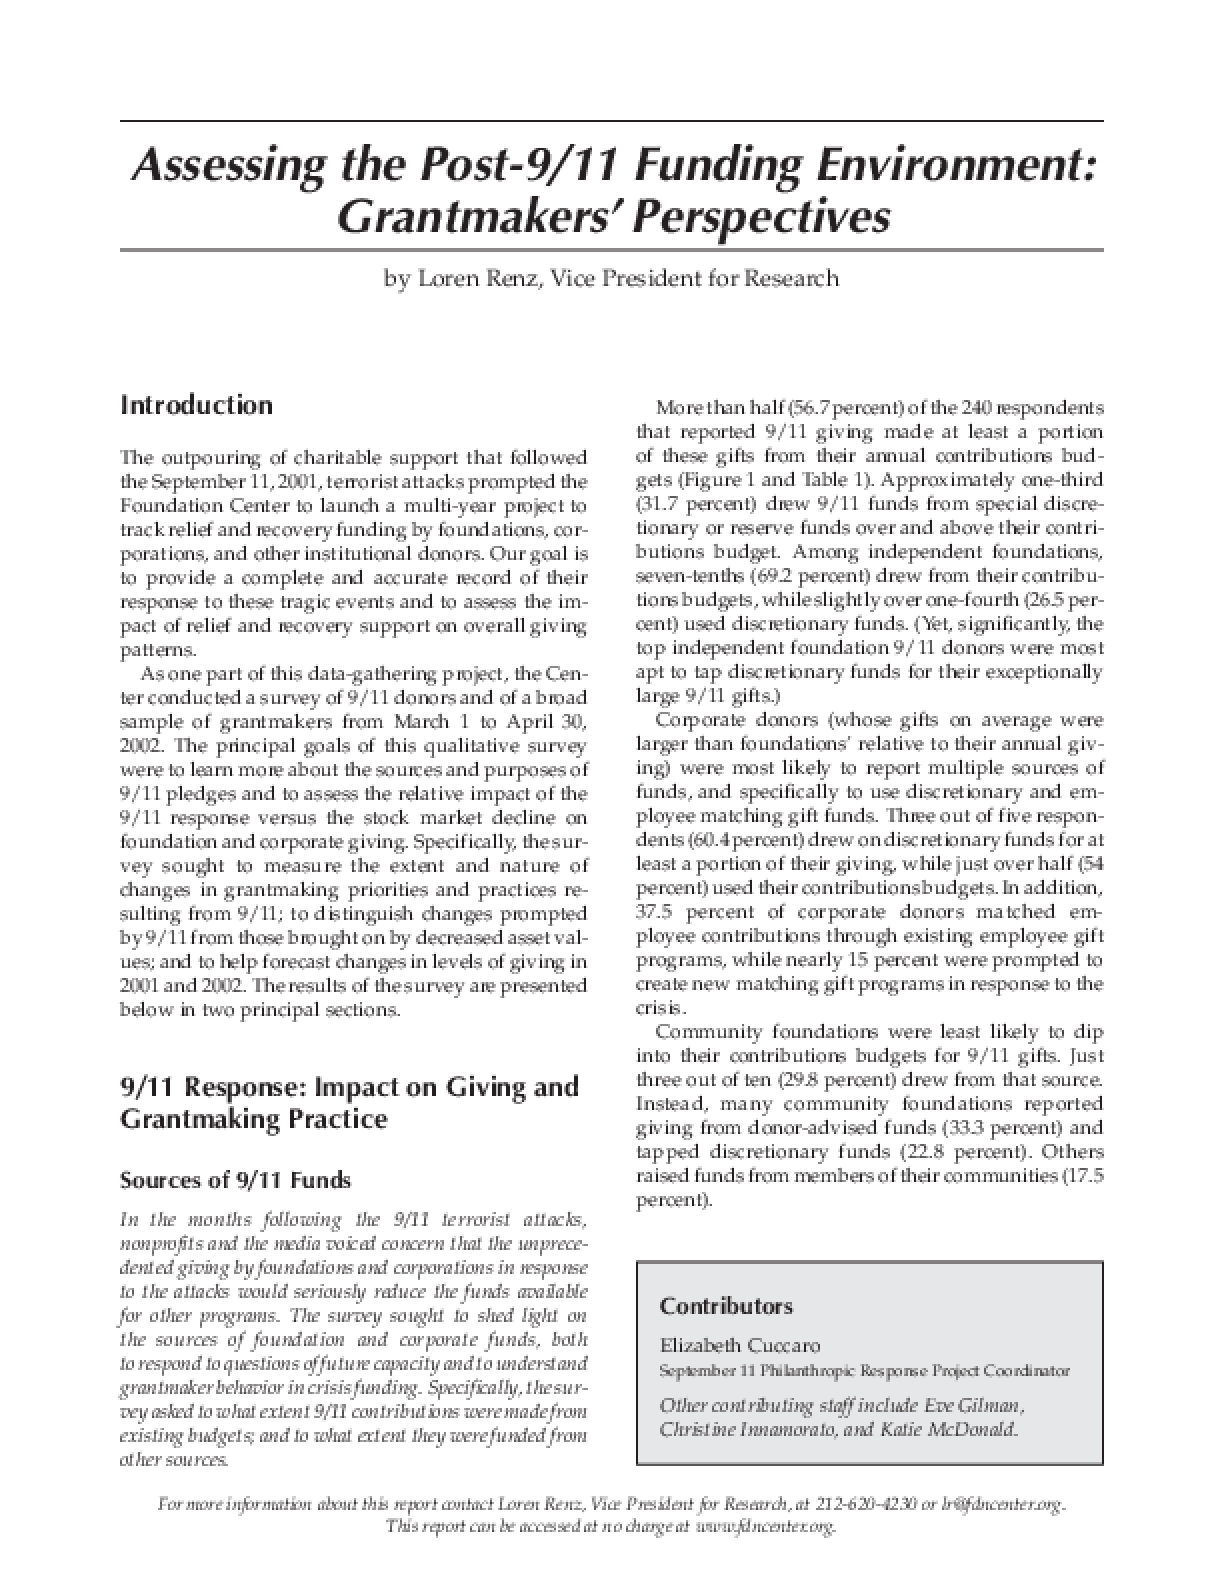 Assessing the Post-9/11 Funding Environment: Grantmakers ...